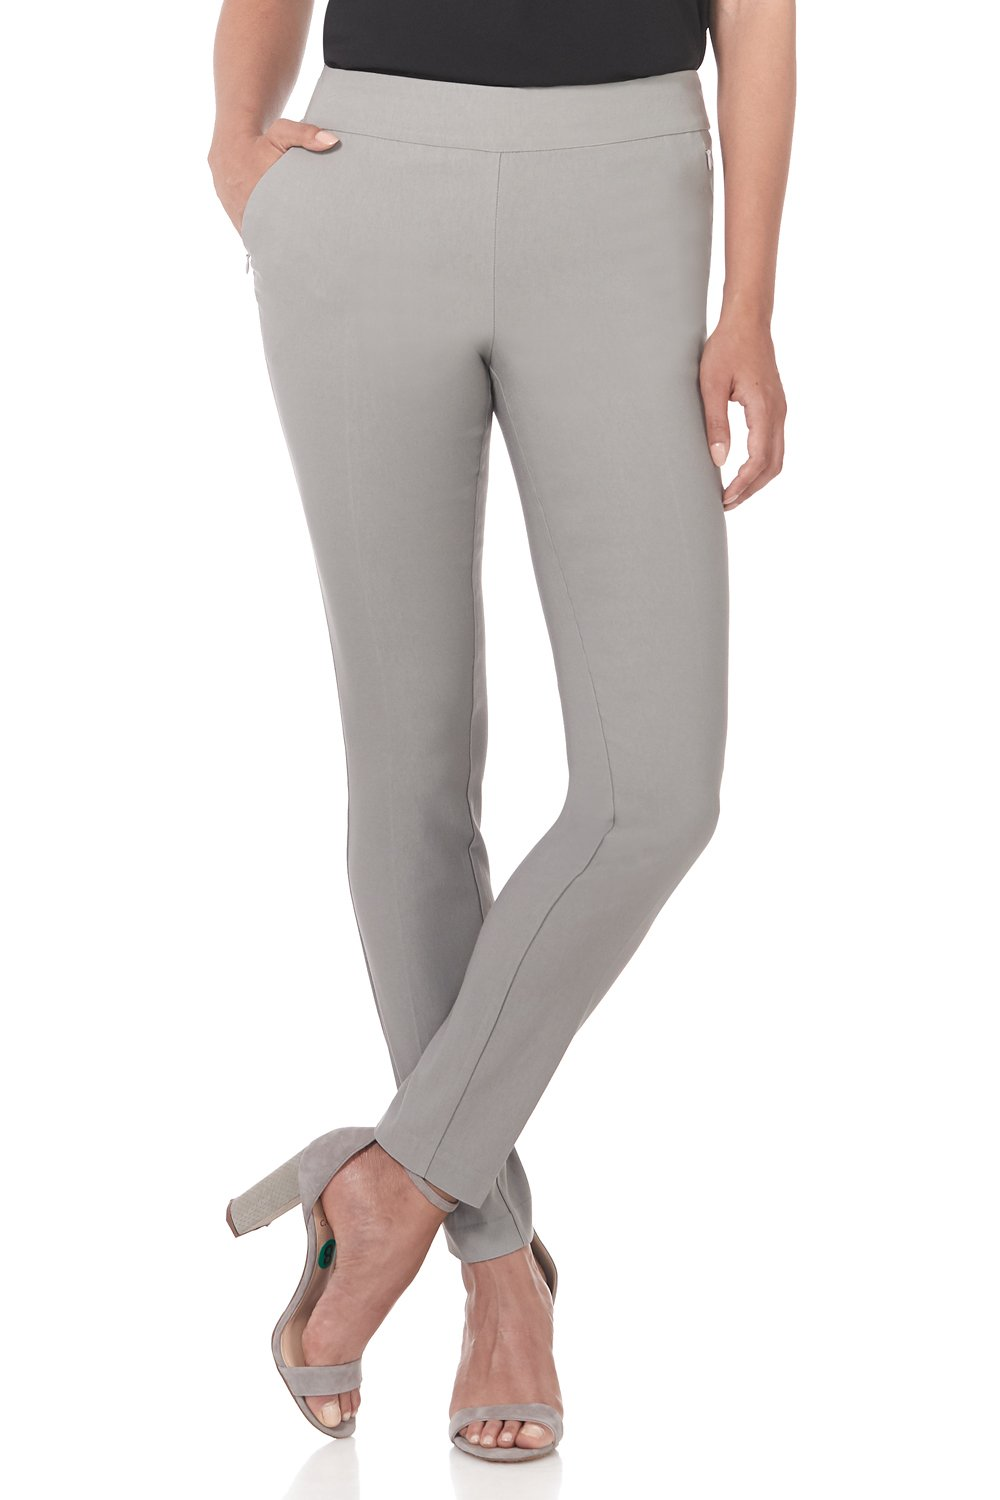 Rekucci Women's Ease in to Comfort Modern Stretch Skinny Pant w/Tummy Control (10,Silver)